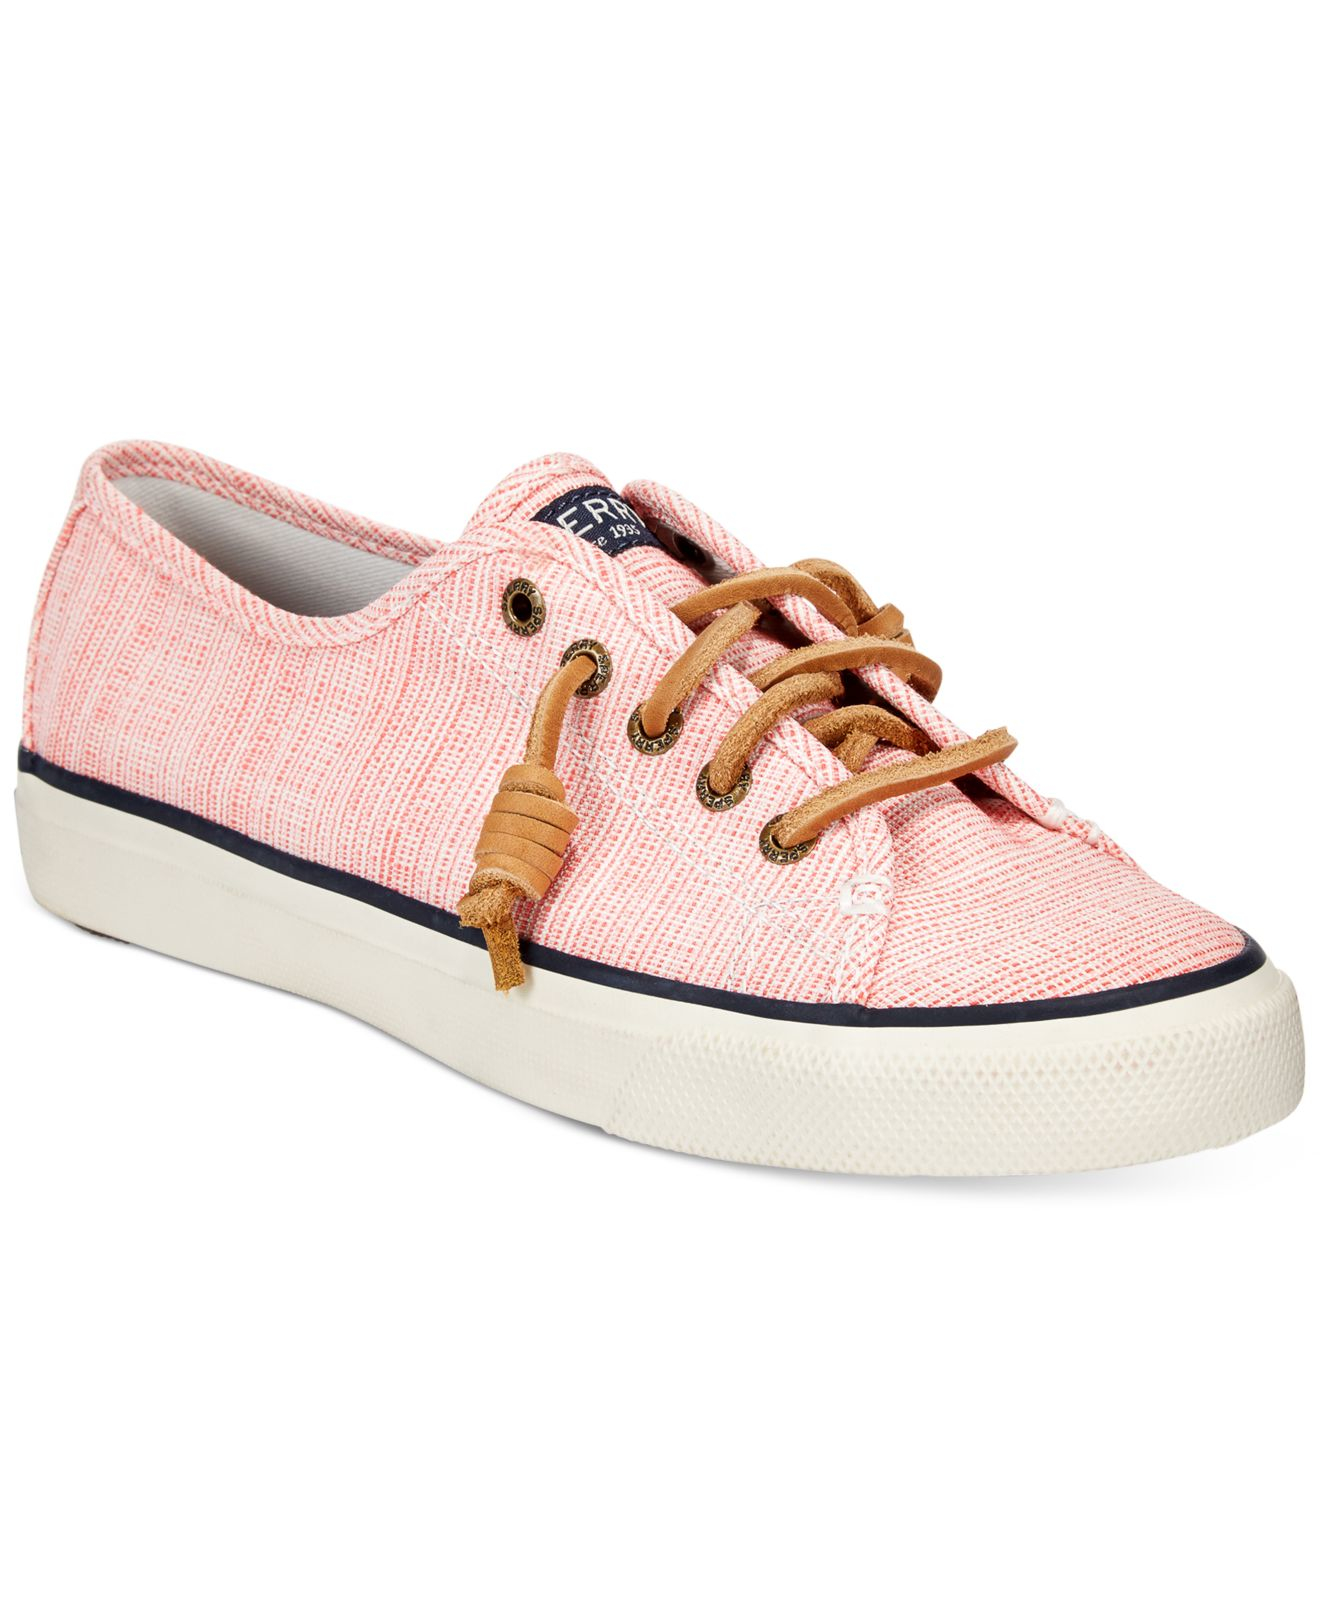 Lyst Sperry Top Sider Women s Seacoast Canvas Sneakers in Pink